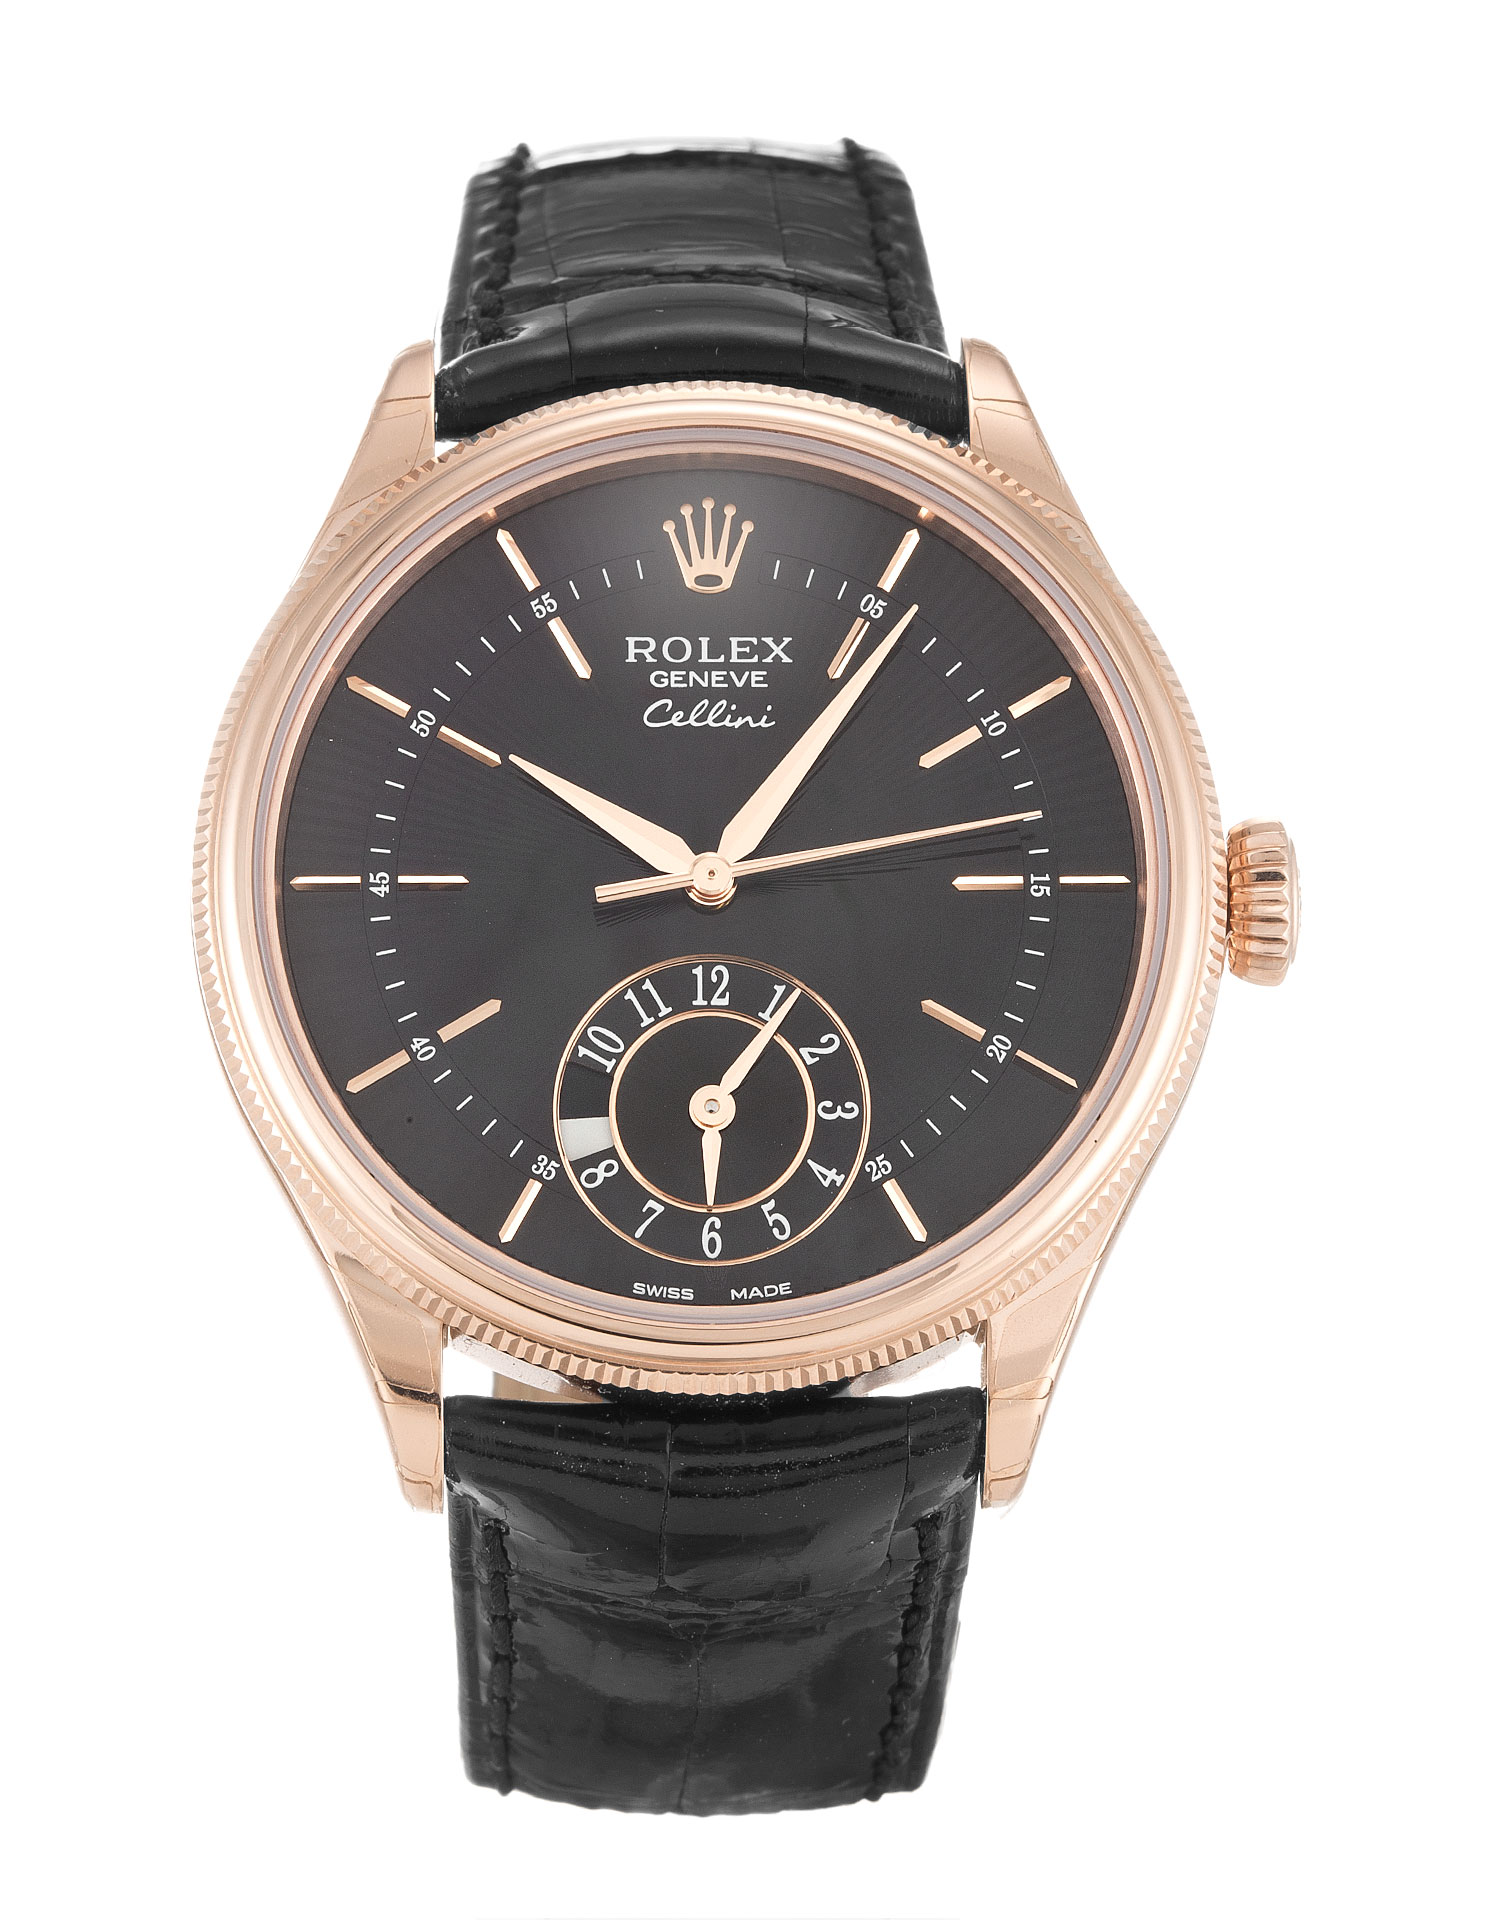 Rolex Cellini 50525 Mens 39 Mm Rose Gold Case Automatic Movement – iapac.to